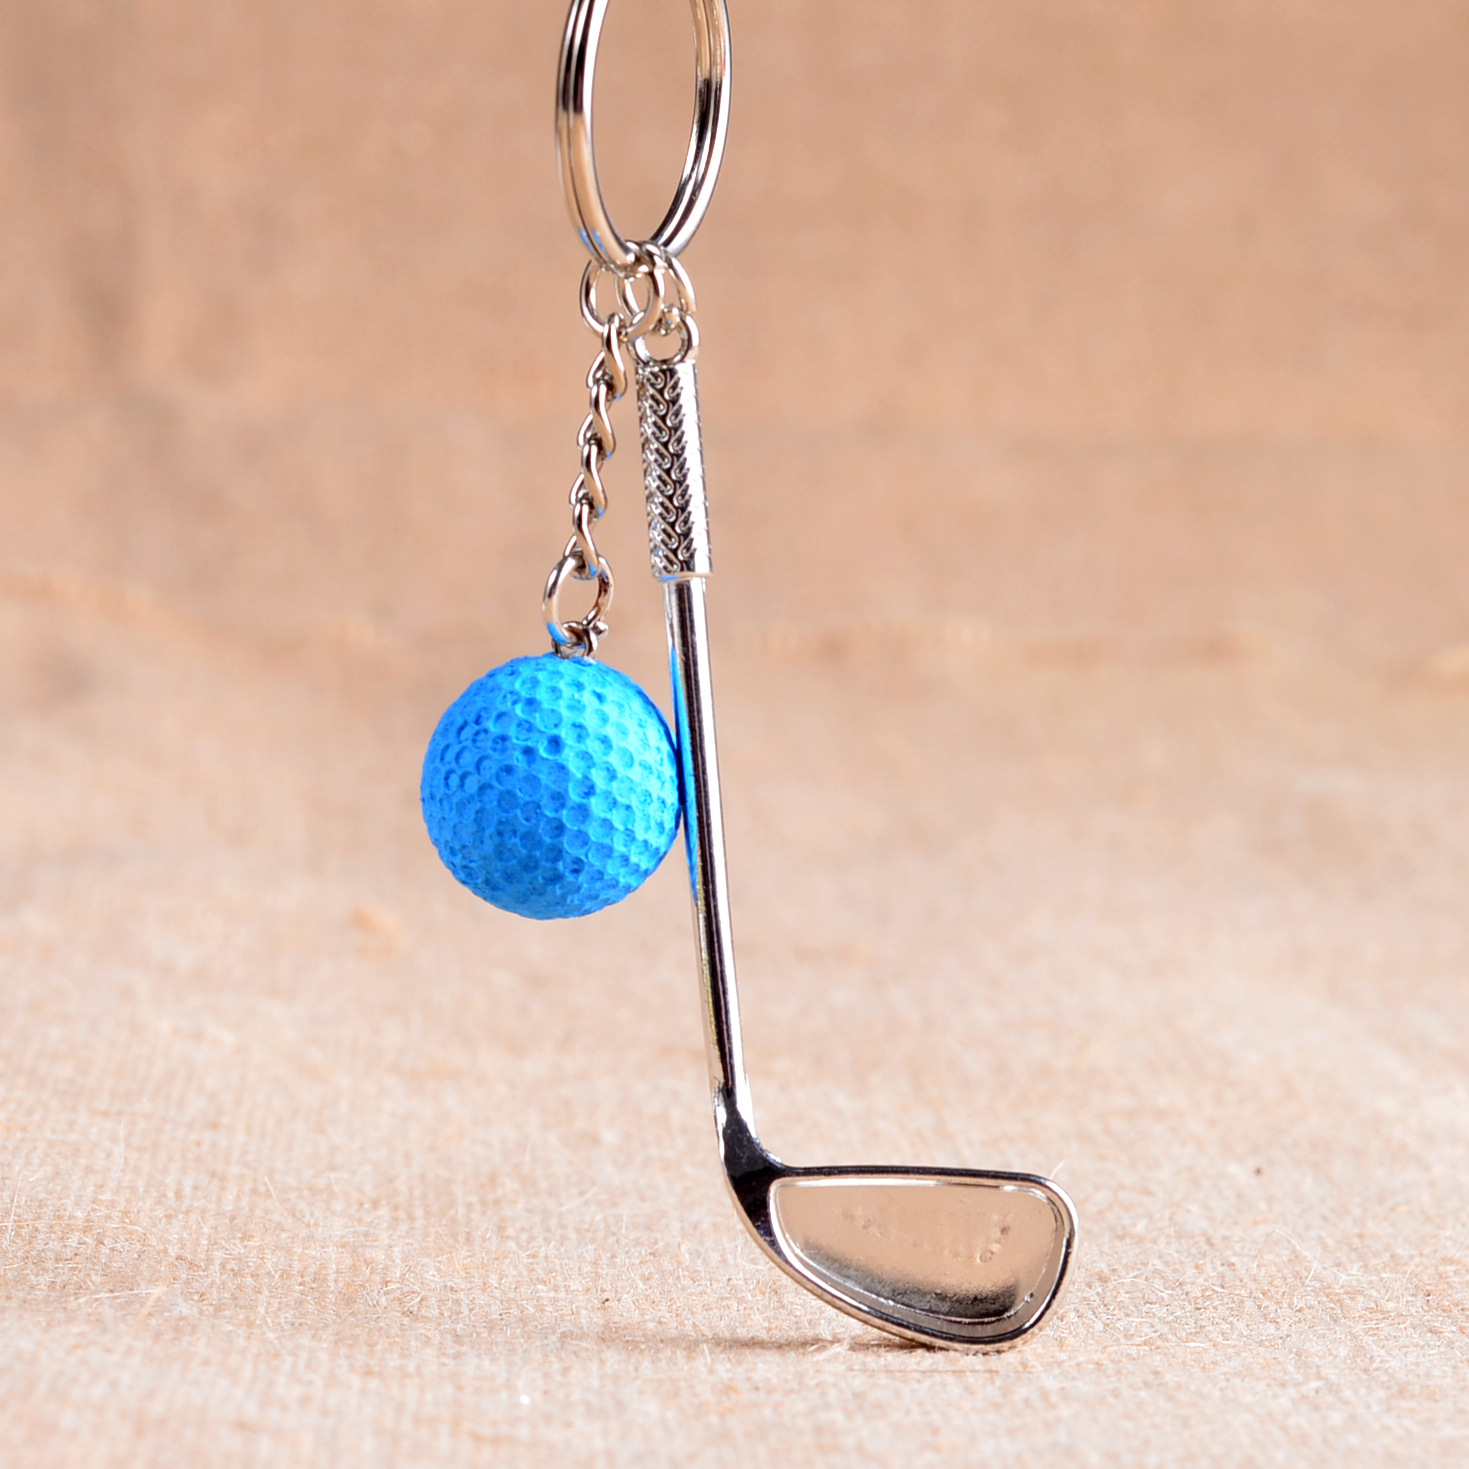 Hot Selling Metal Golf Club 6 Color Ball High Quality Pendant Sport Key Chain Key Ring Couple jewelry Accessories Souvenir Gift